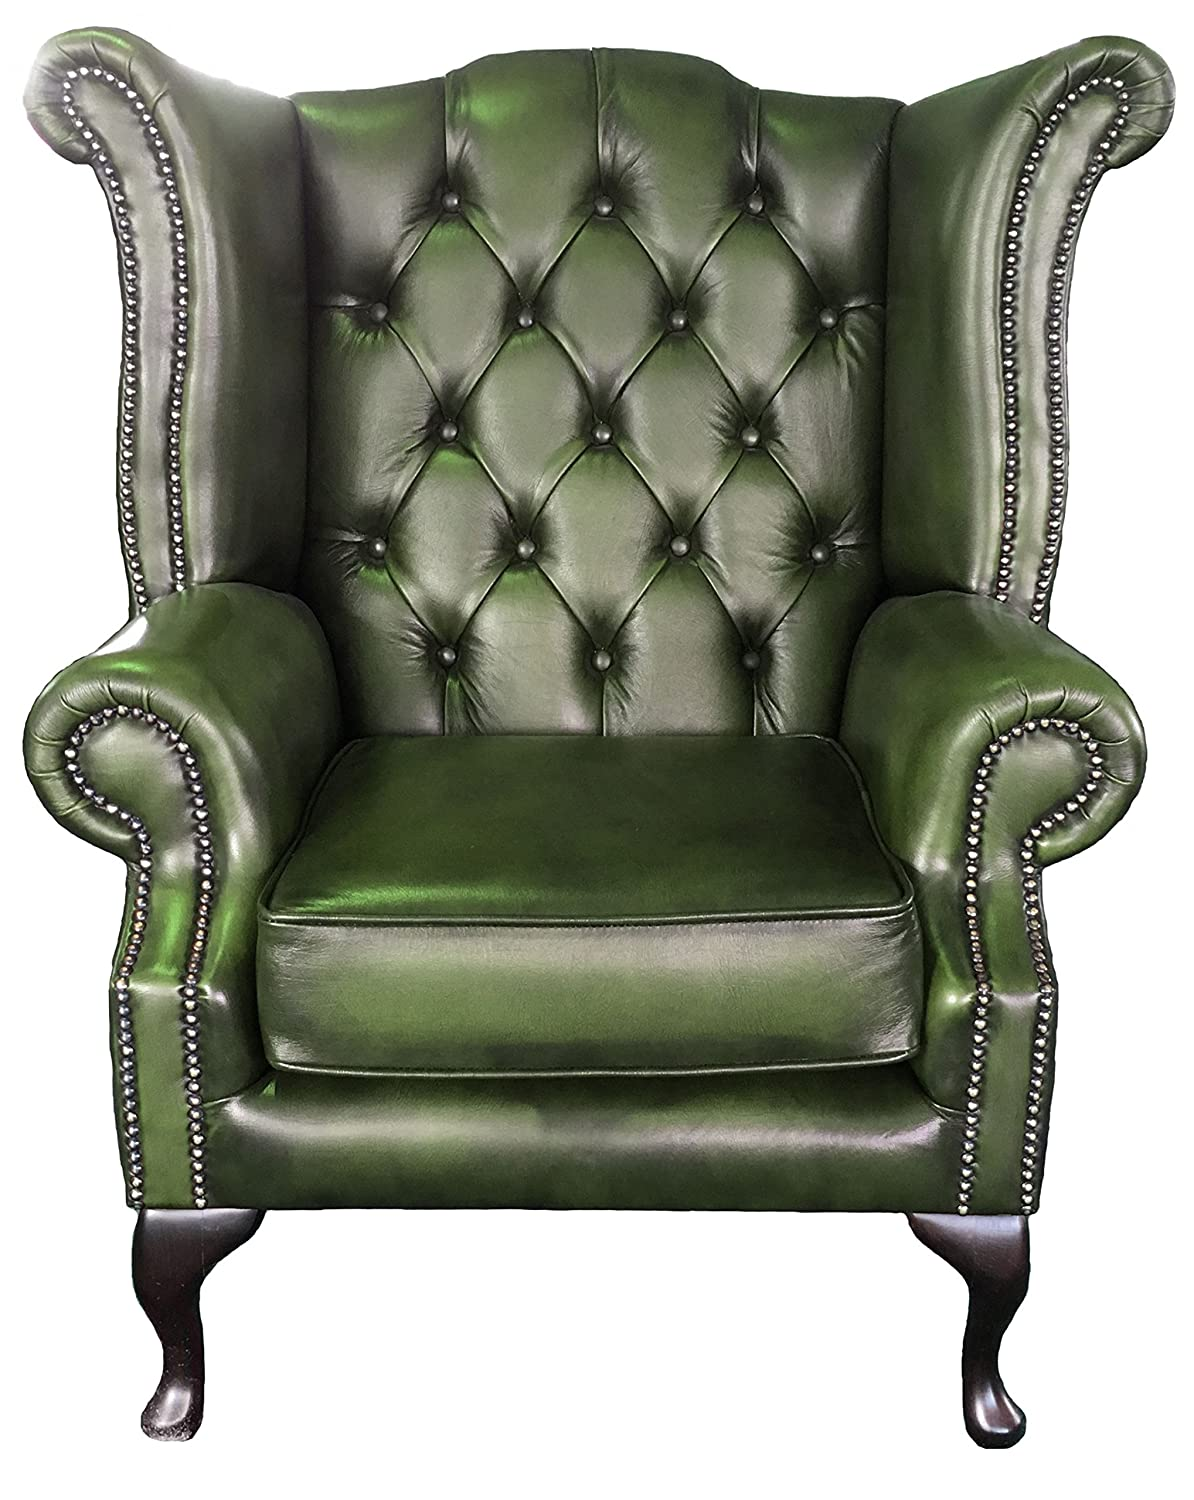 Perfect Chesterfield Antique Green Genuine Leather Queen Anne Armchair:  Amazon.co.uk: Kitchen U0026 Home